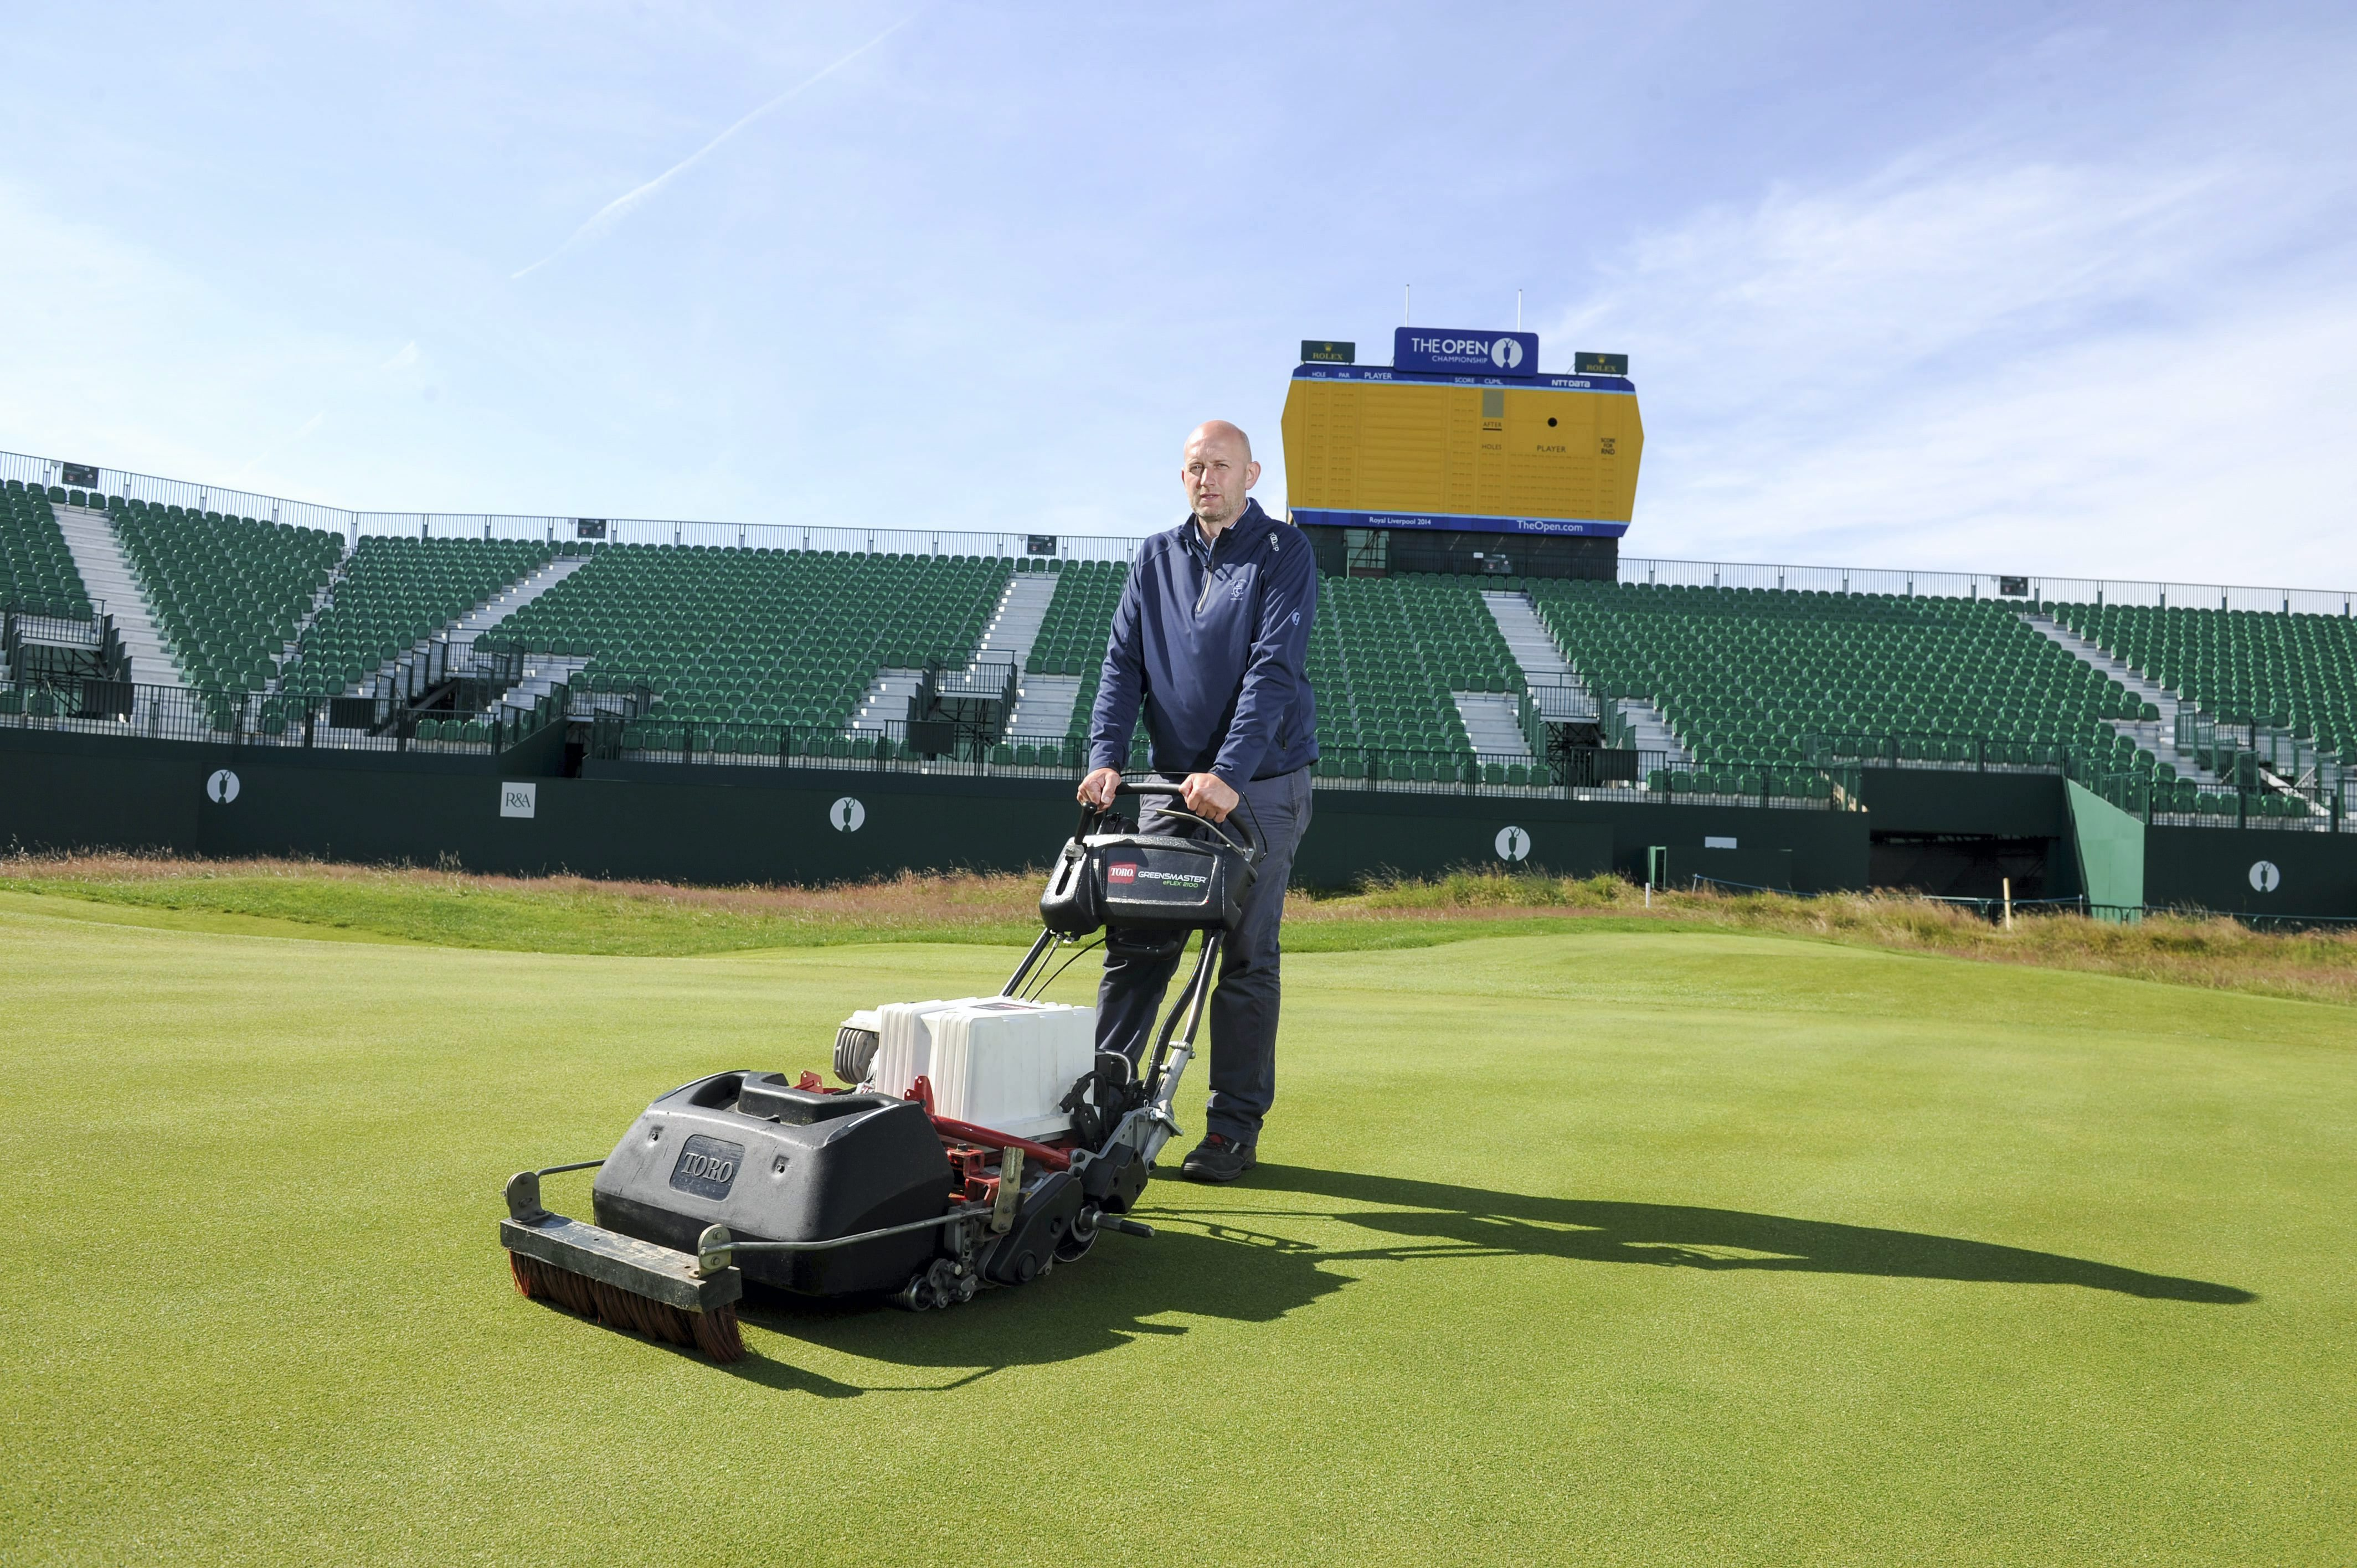 Craig Gilholm, course manager at Royal Liverpool Golf Club, with Toro's eFlex lithium ion battery-powered greensmower. (Photo: Business Wire)